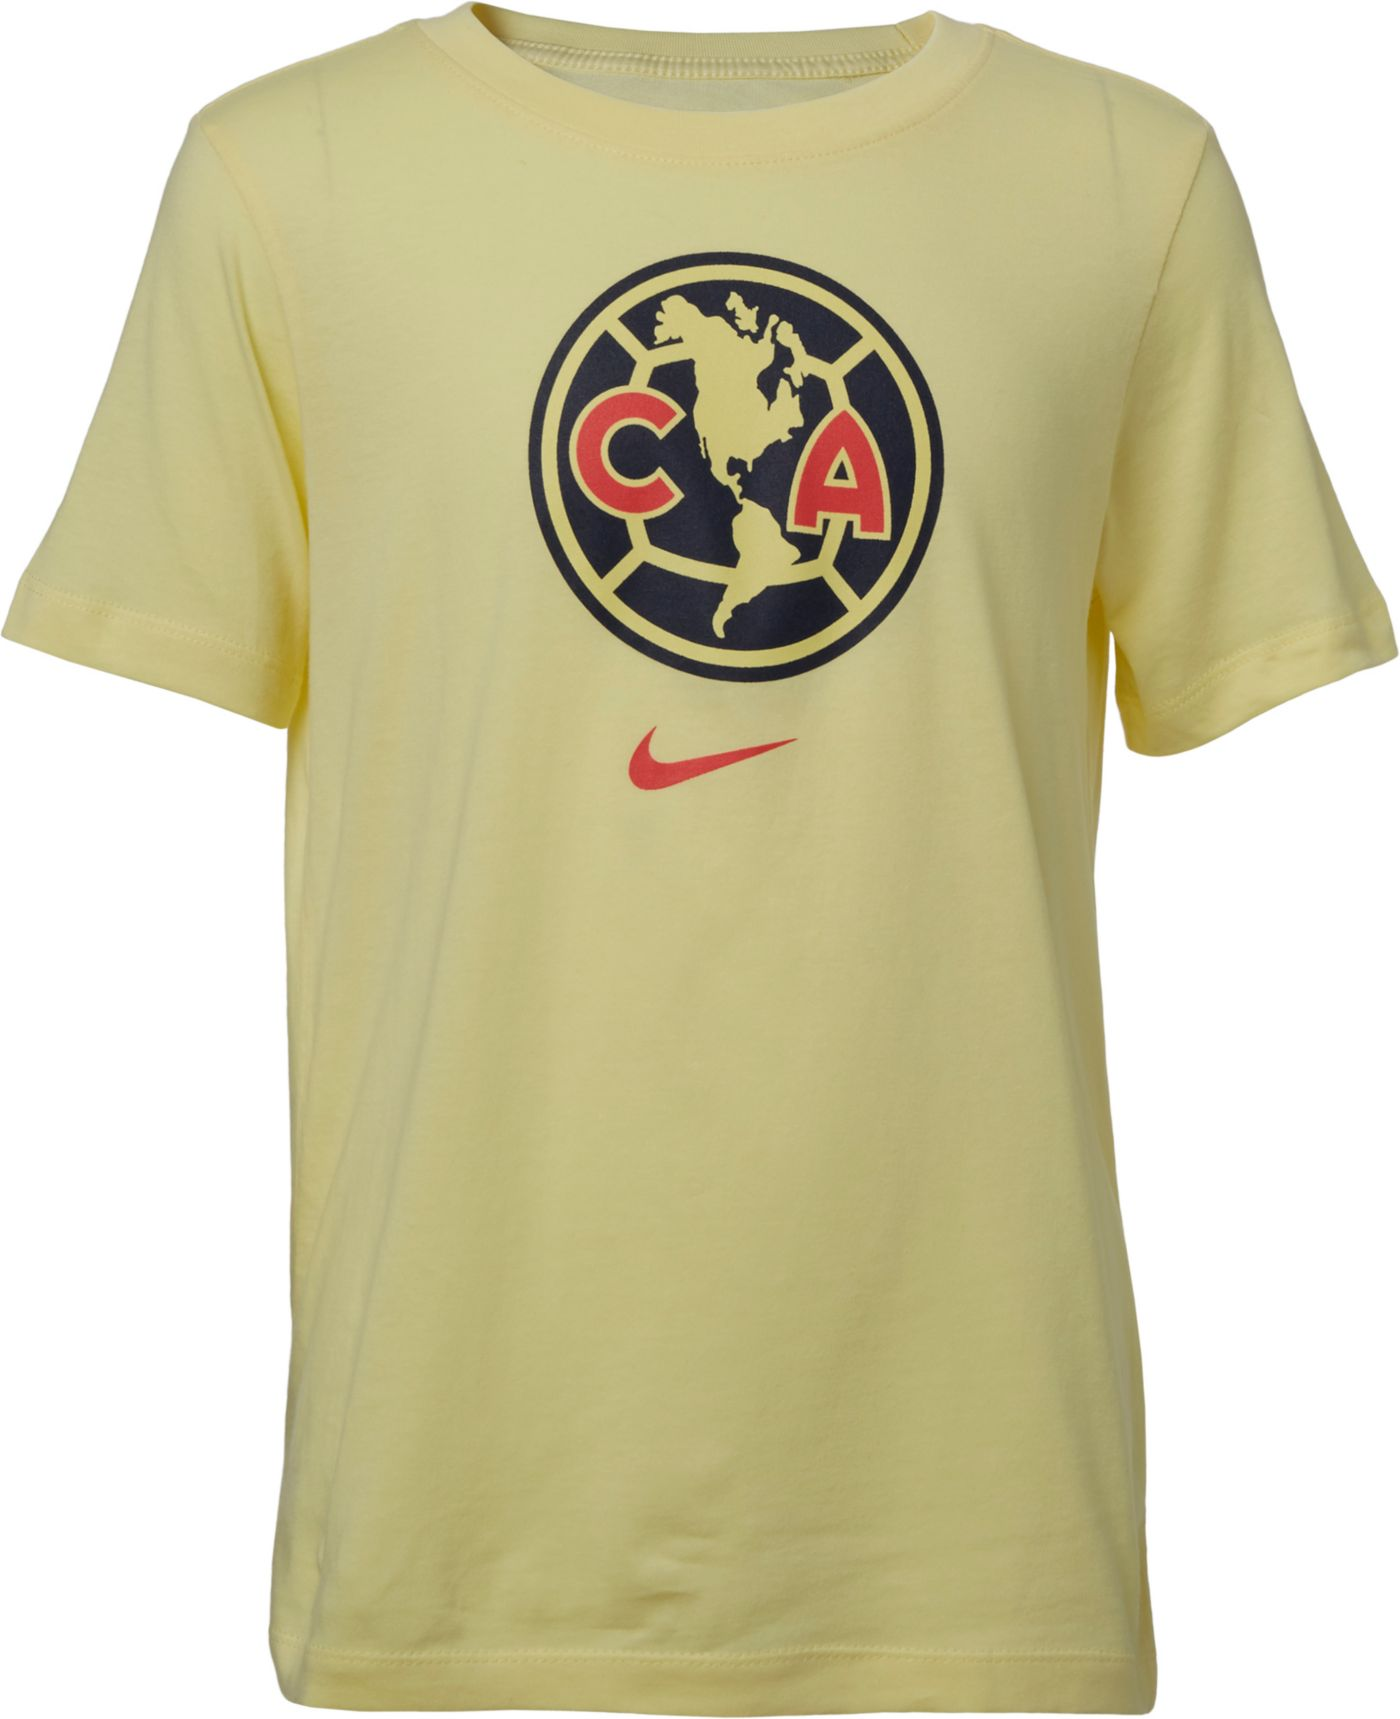 Nike Youth Club America Crest Yellow T-Shirt